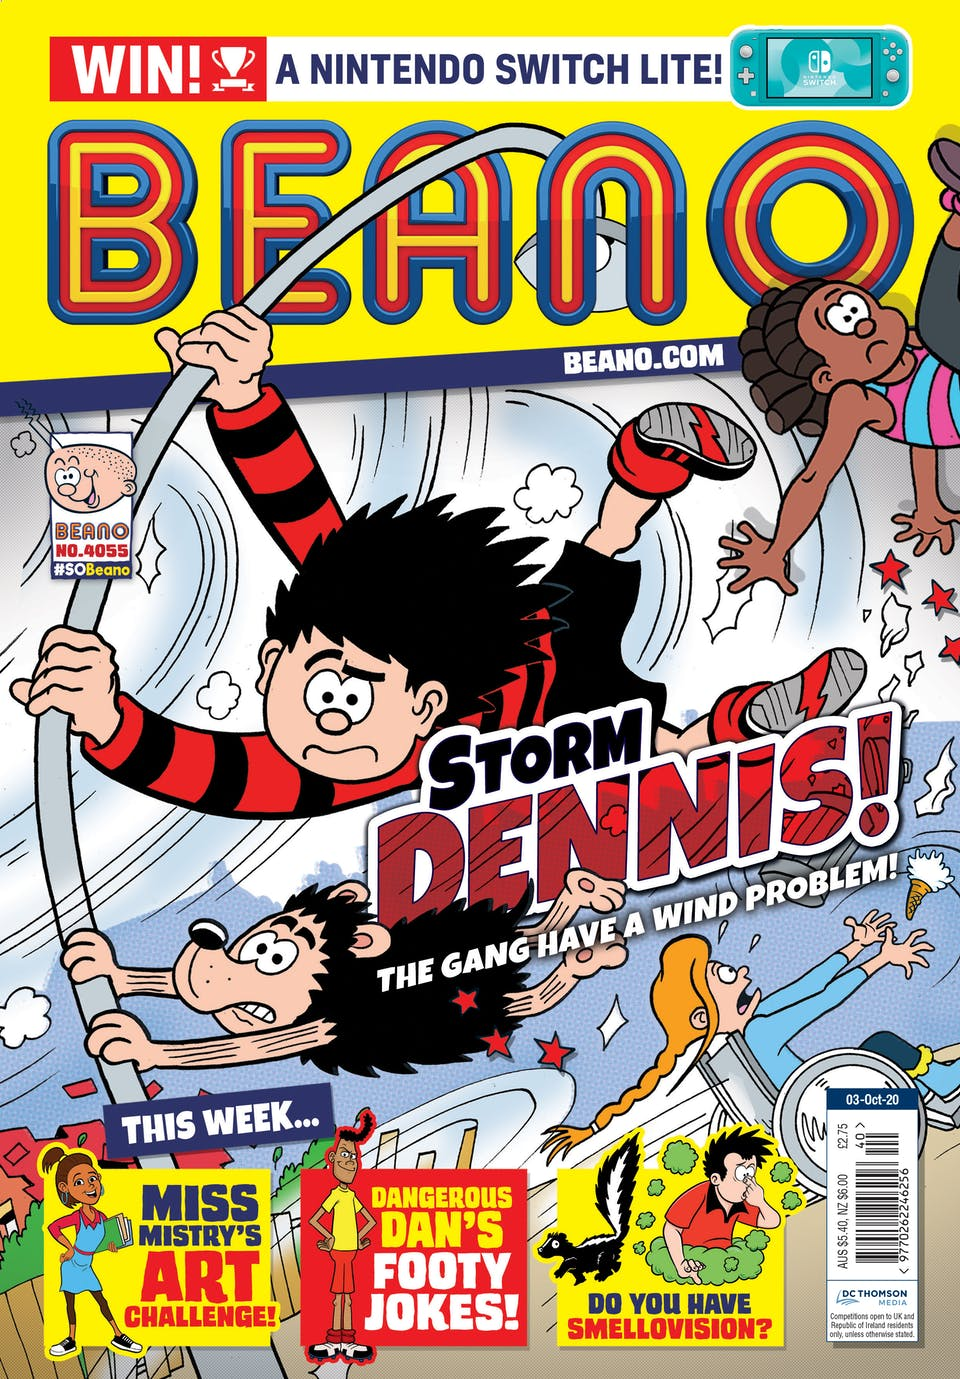 Inside Beano no.4053  - Storm Dennis has hit Beanotown!